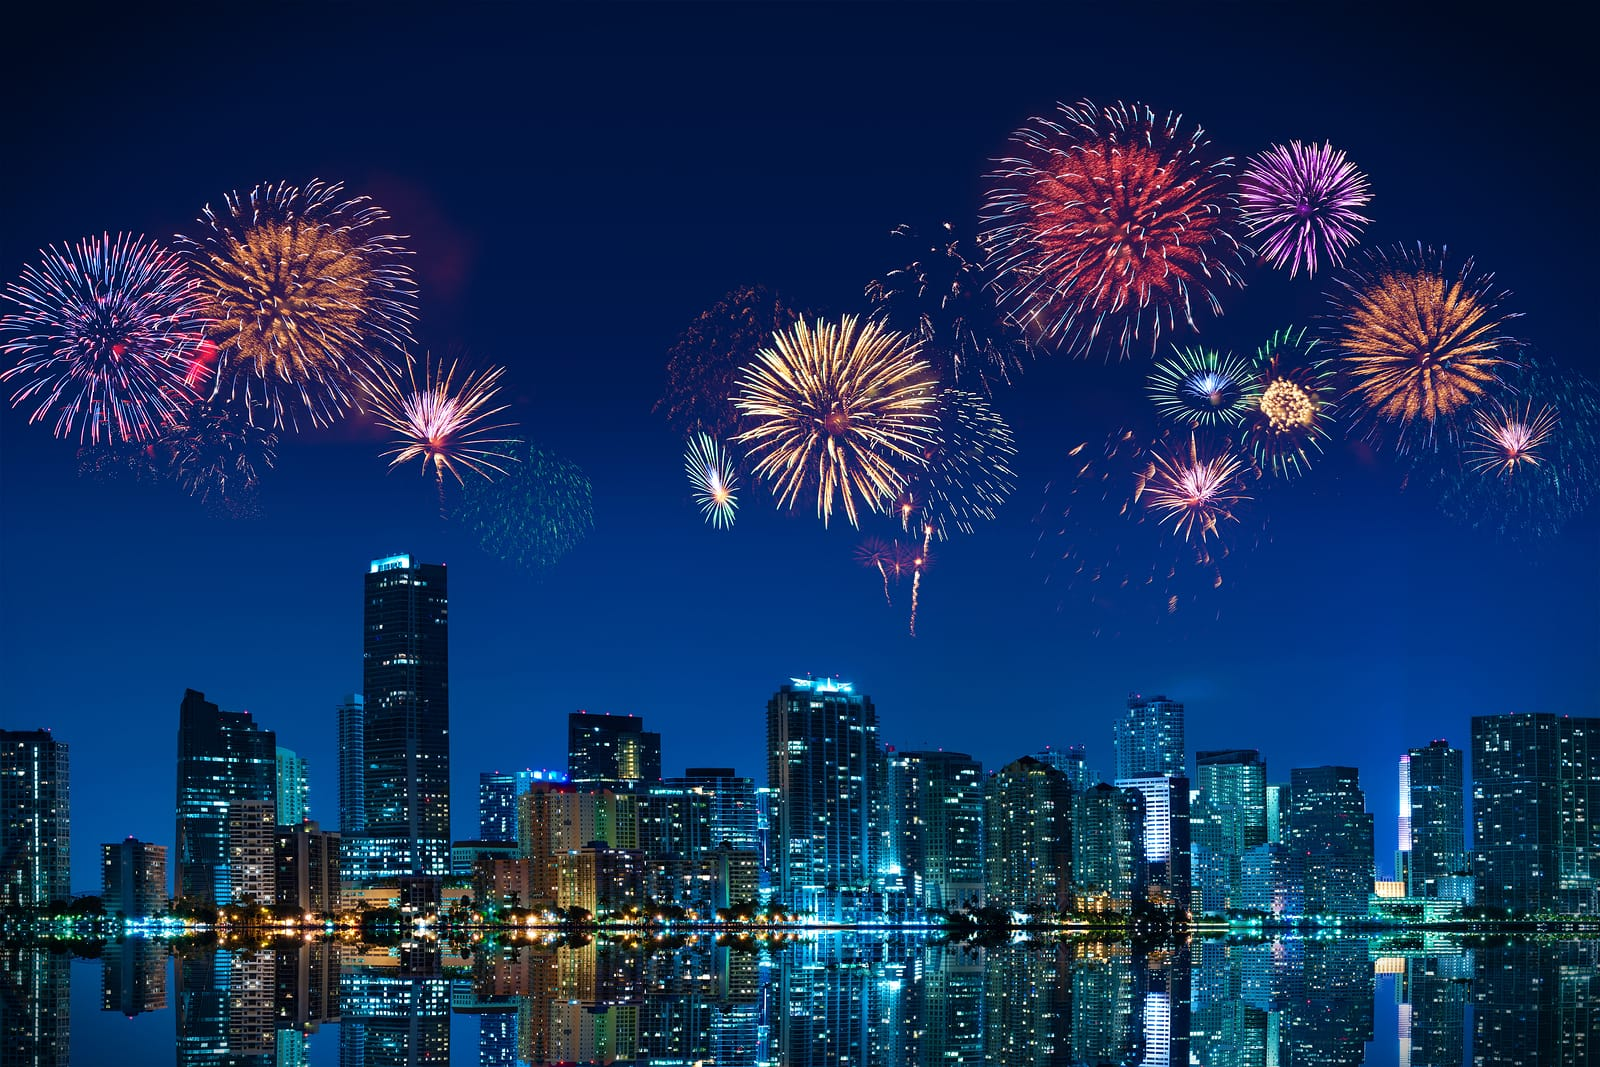 The incredible New Year fireworks display over the skyline of downtown Miami.